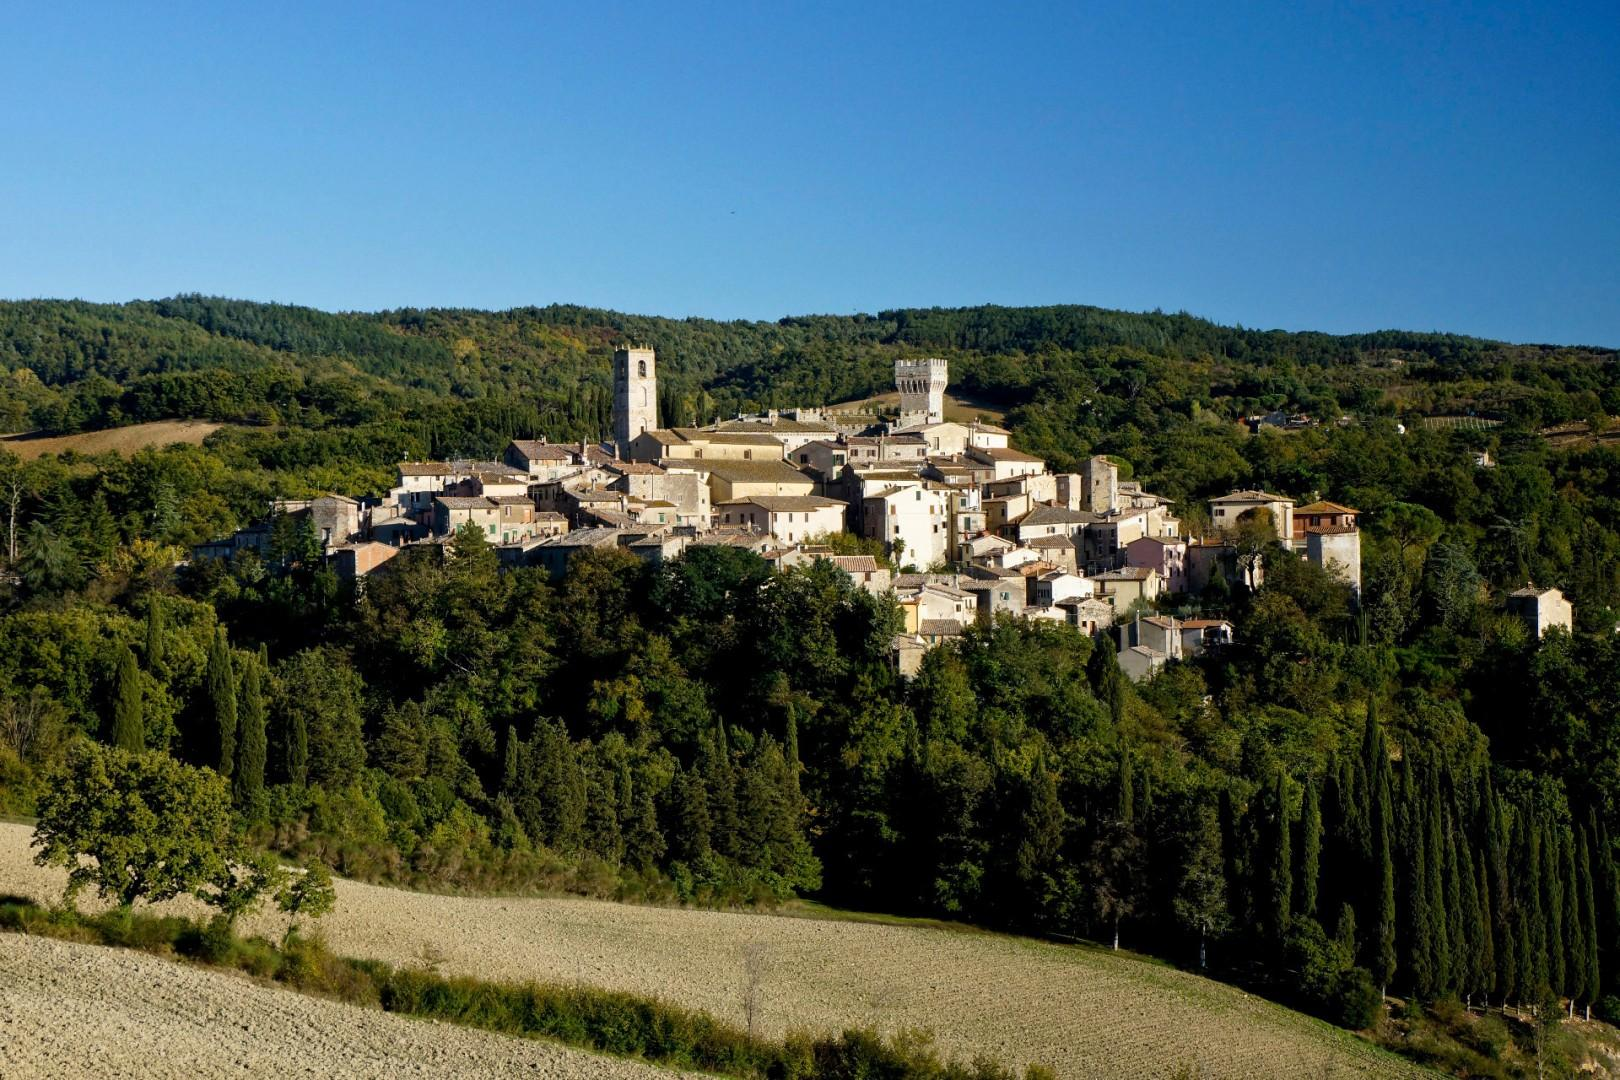 A classic fortified hill town, San Casciano dei Bagni also offers restaurants and shopping.